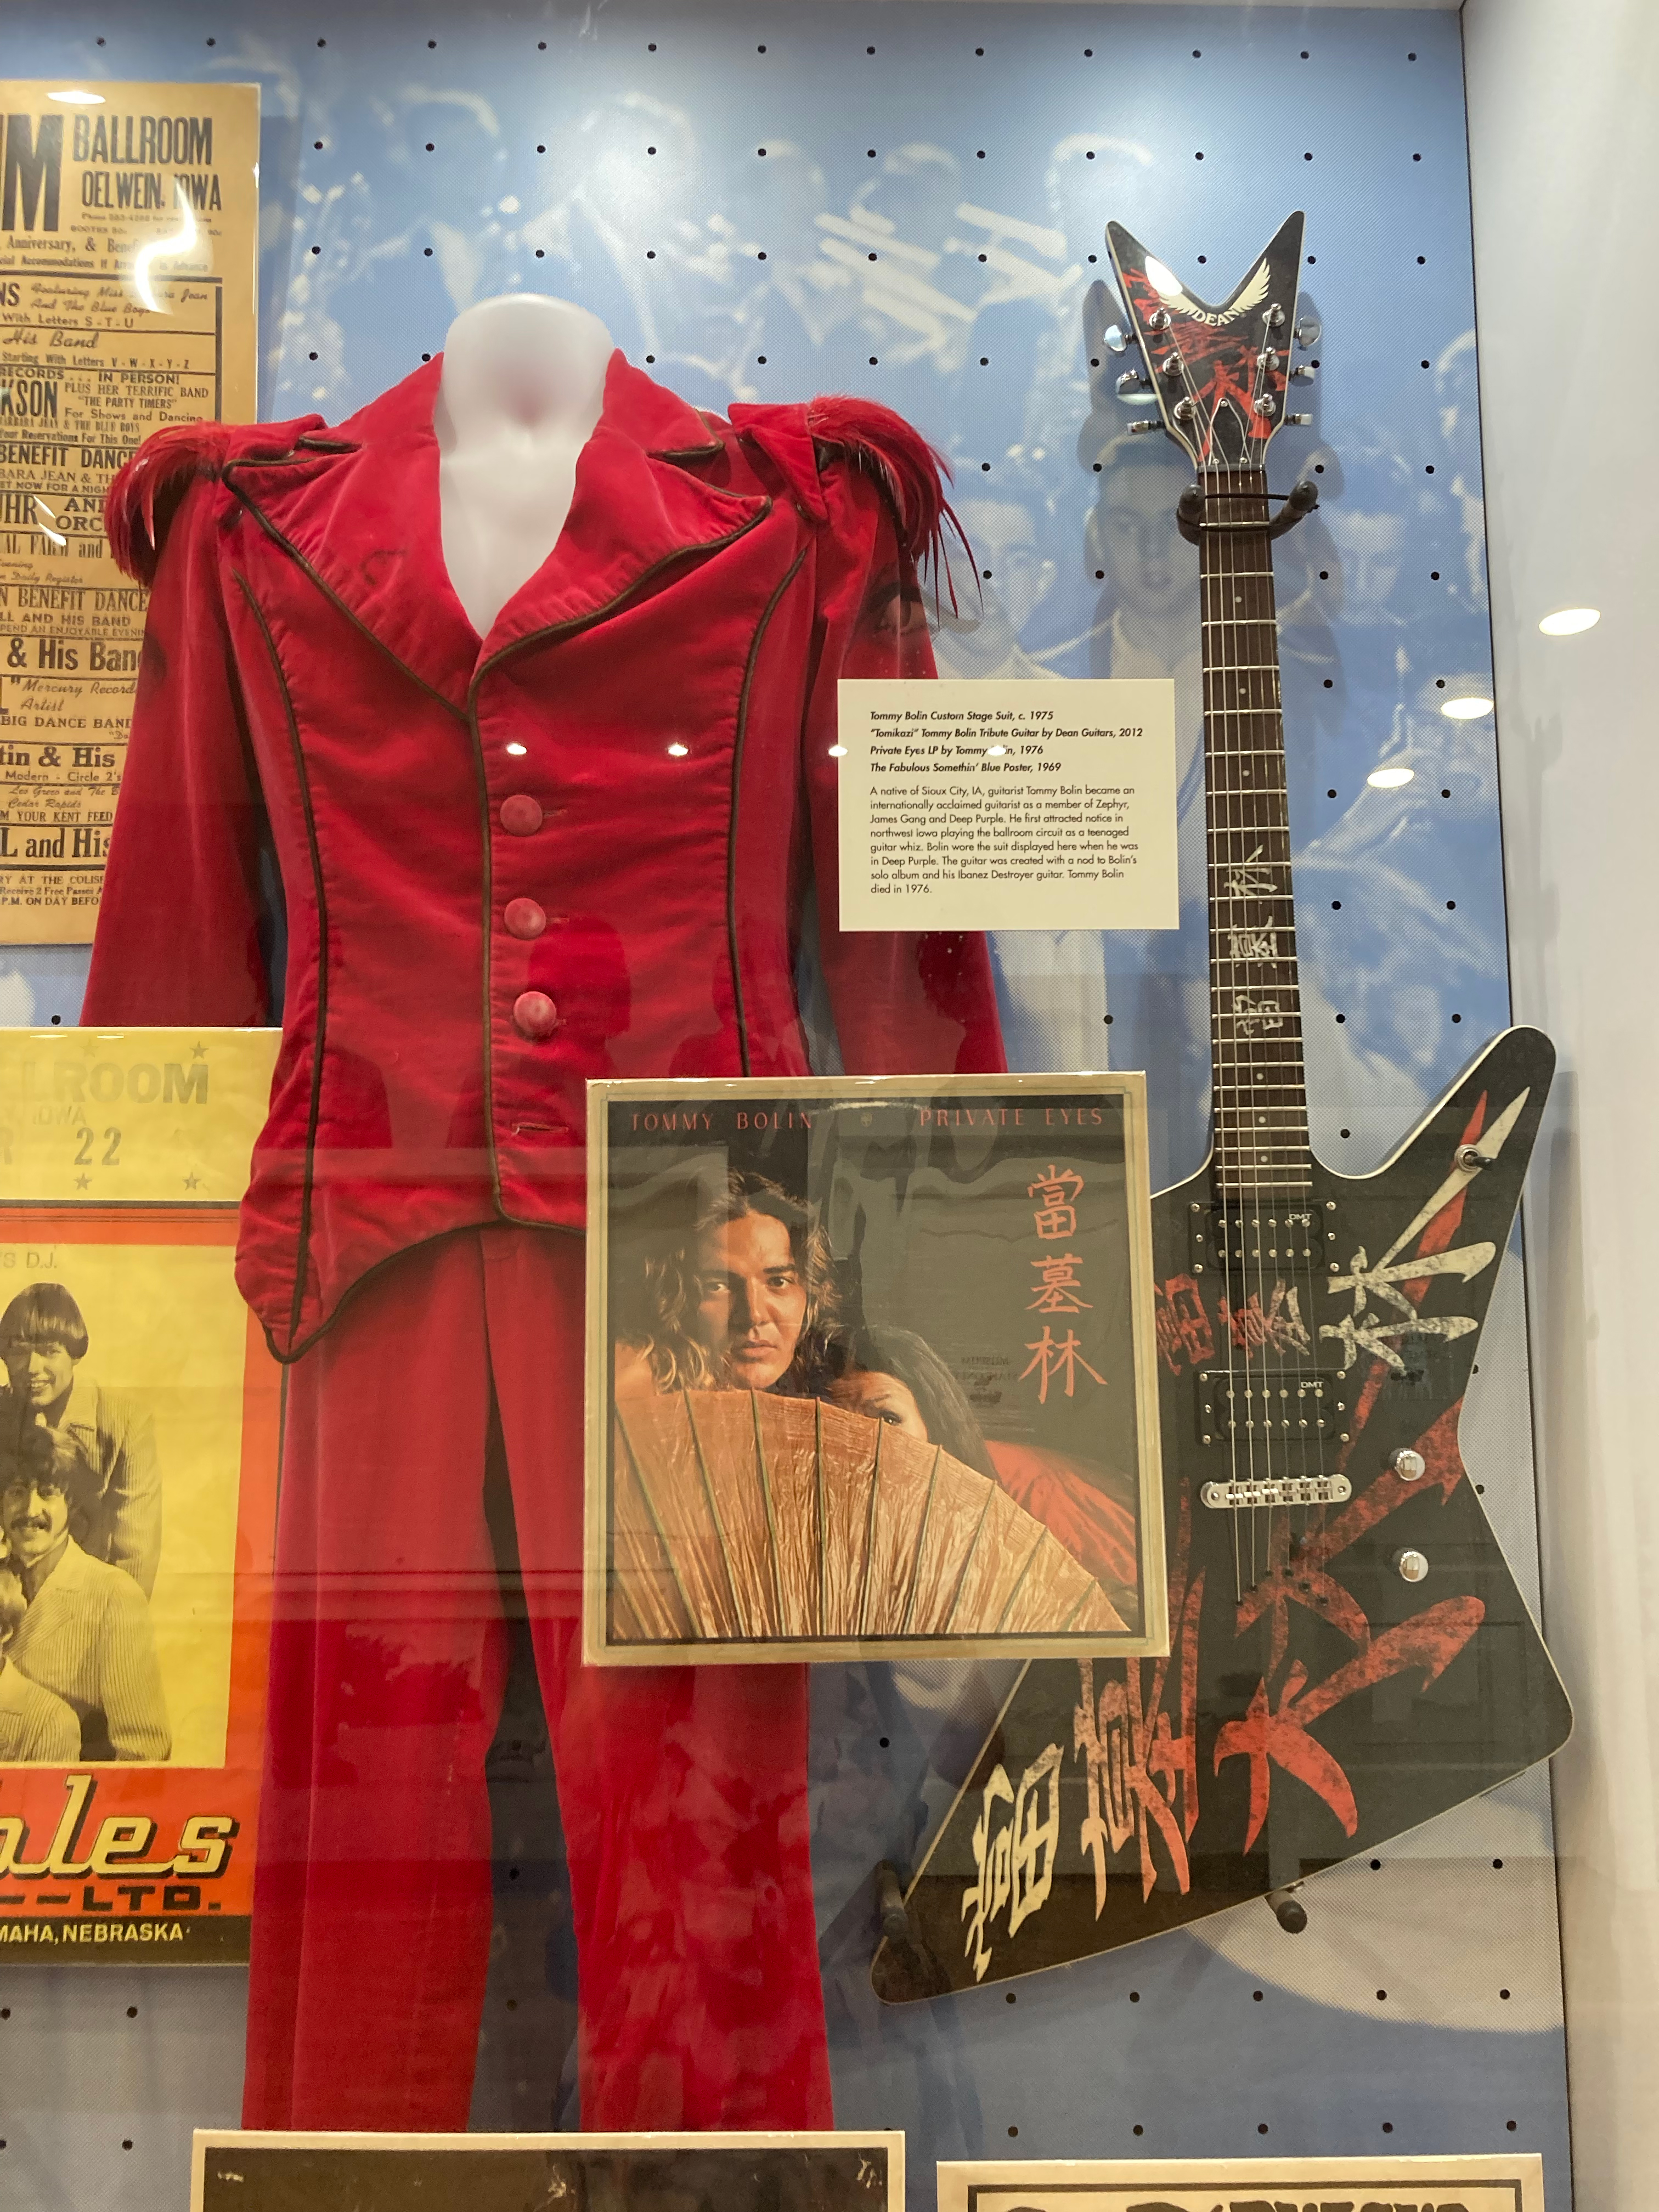 A guitar, velvet pantsuit, and a record with a woman and a fan on the cover in a display case